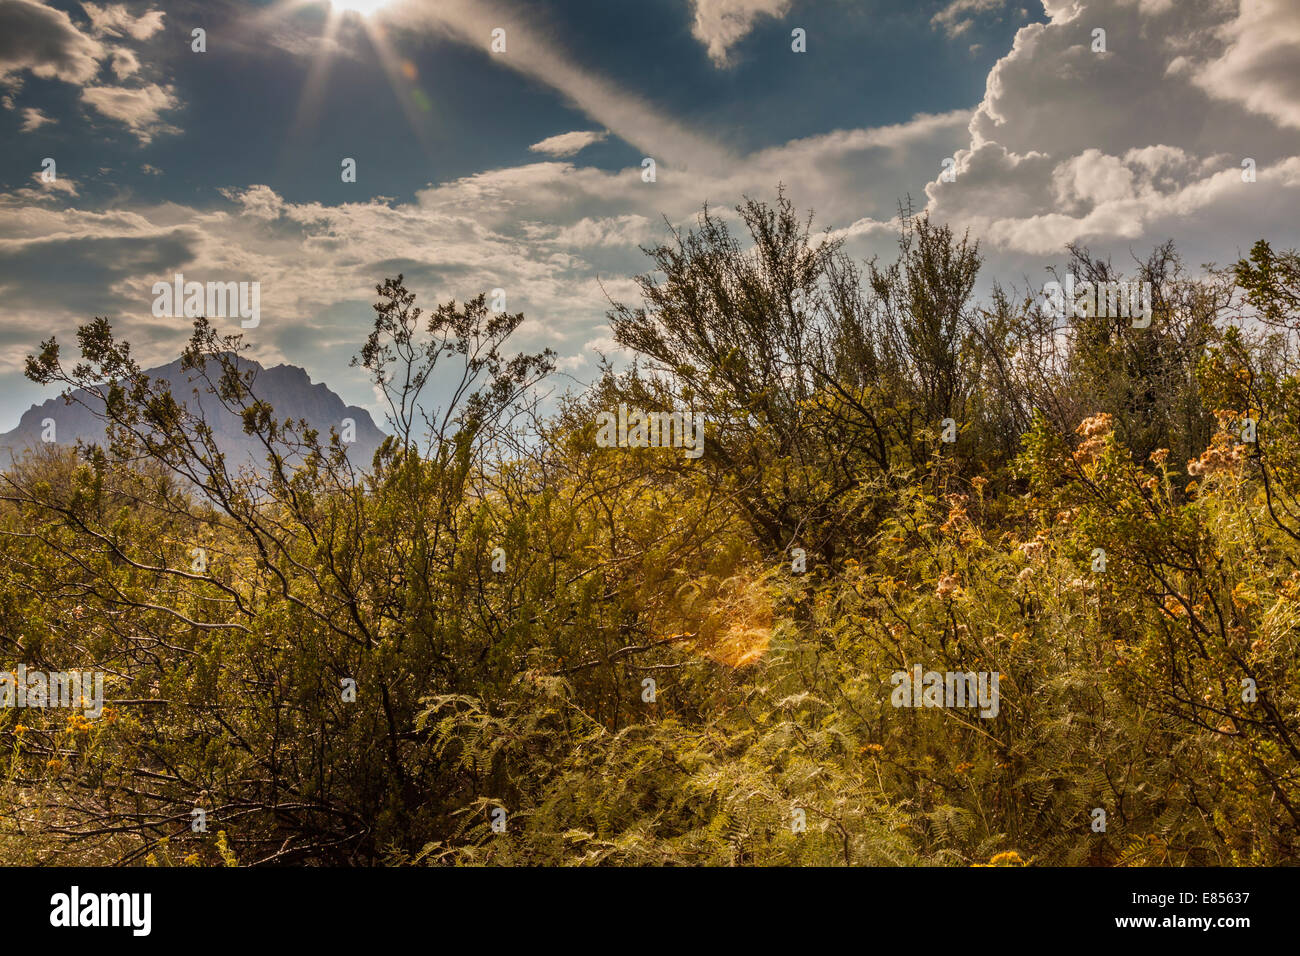 Starburst and light after storm at Dugout Wells in Big Bend National Park. - Stock Image